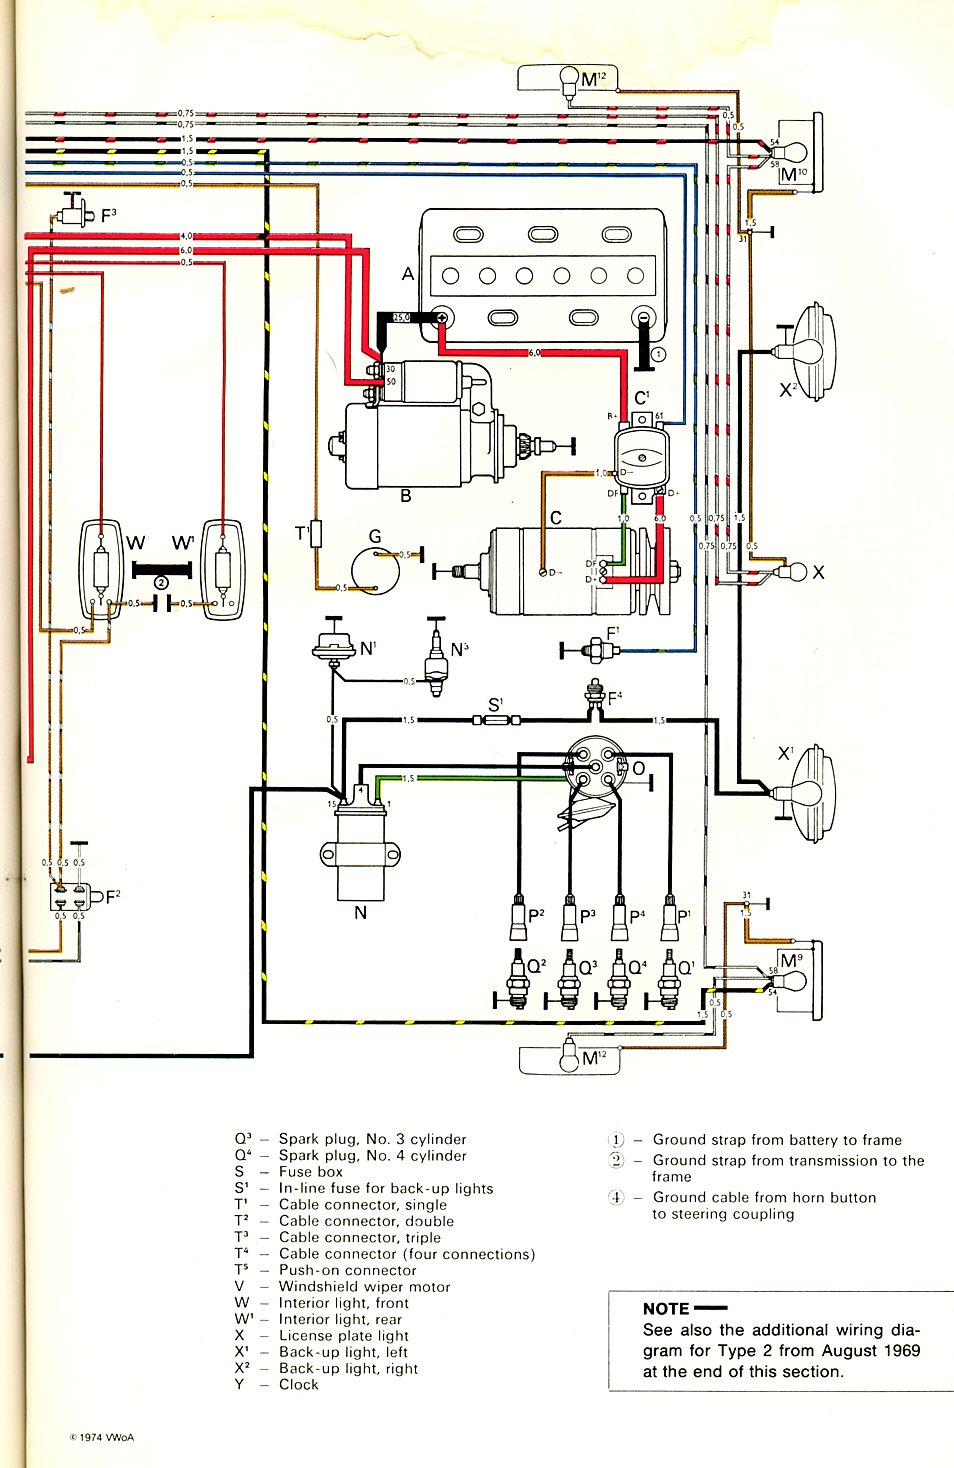 Type 2 Wiring Diagrams Cub Cadet 70 Diagram Lights